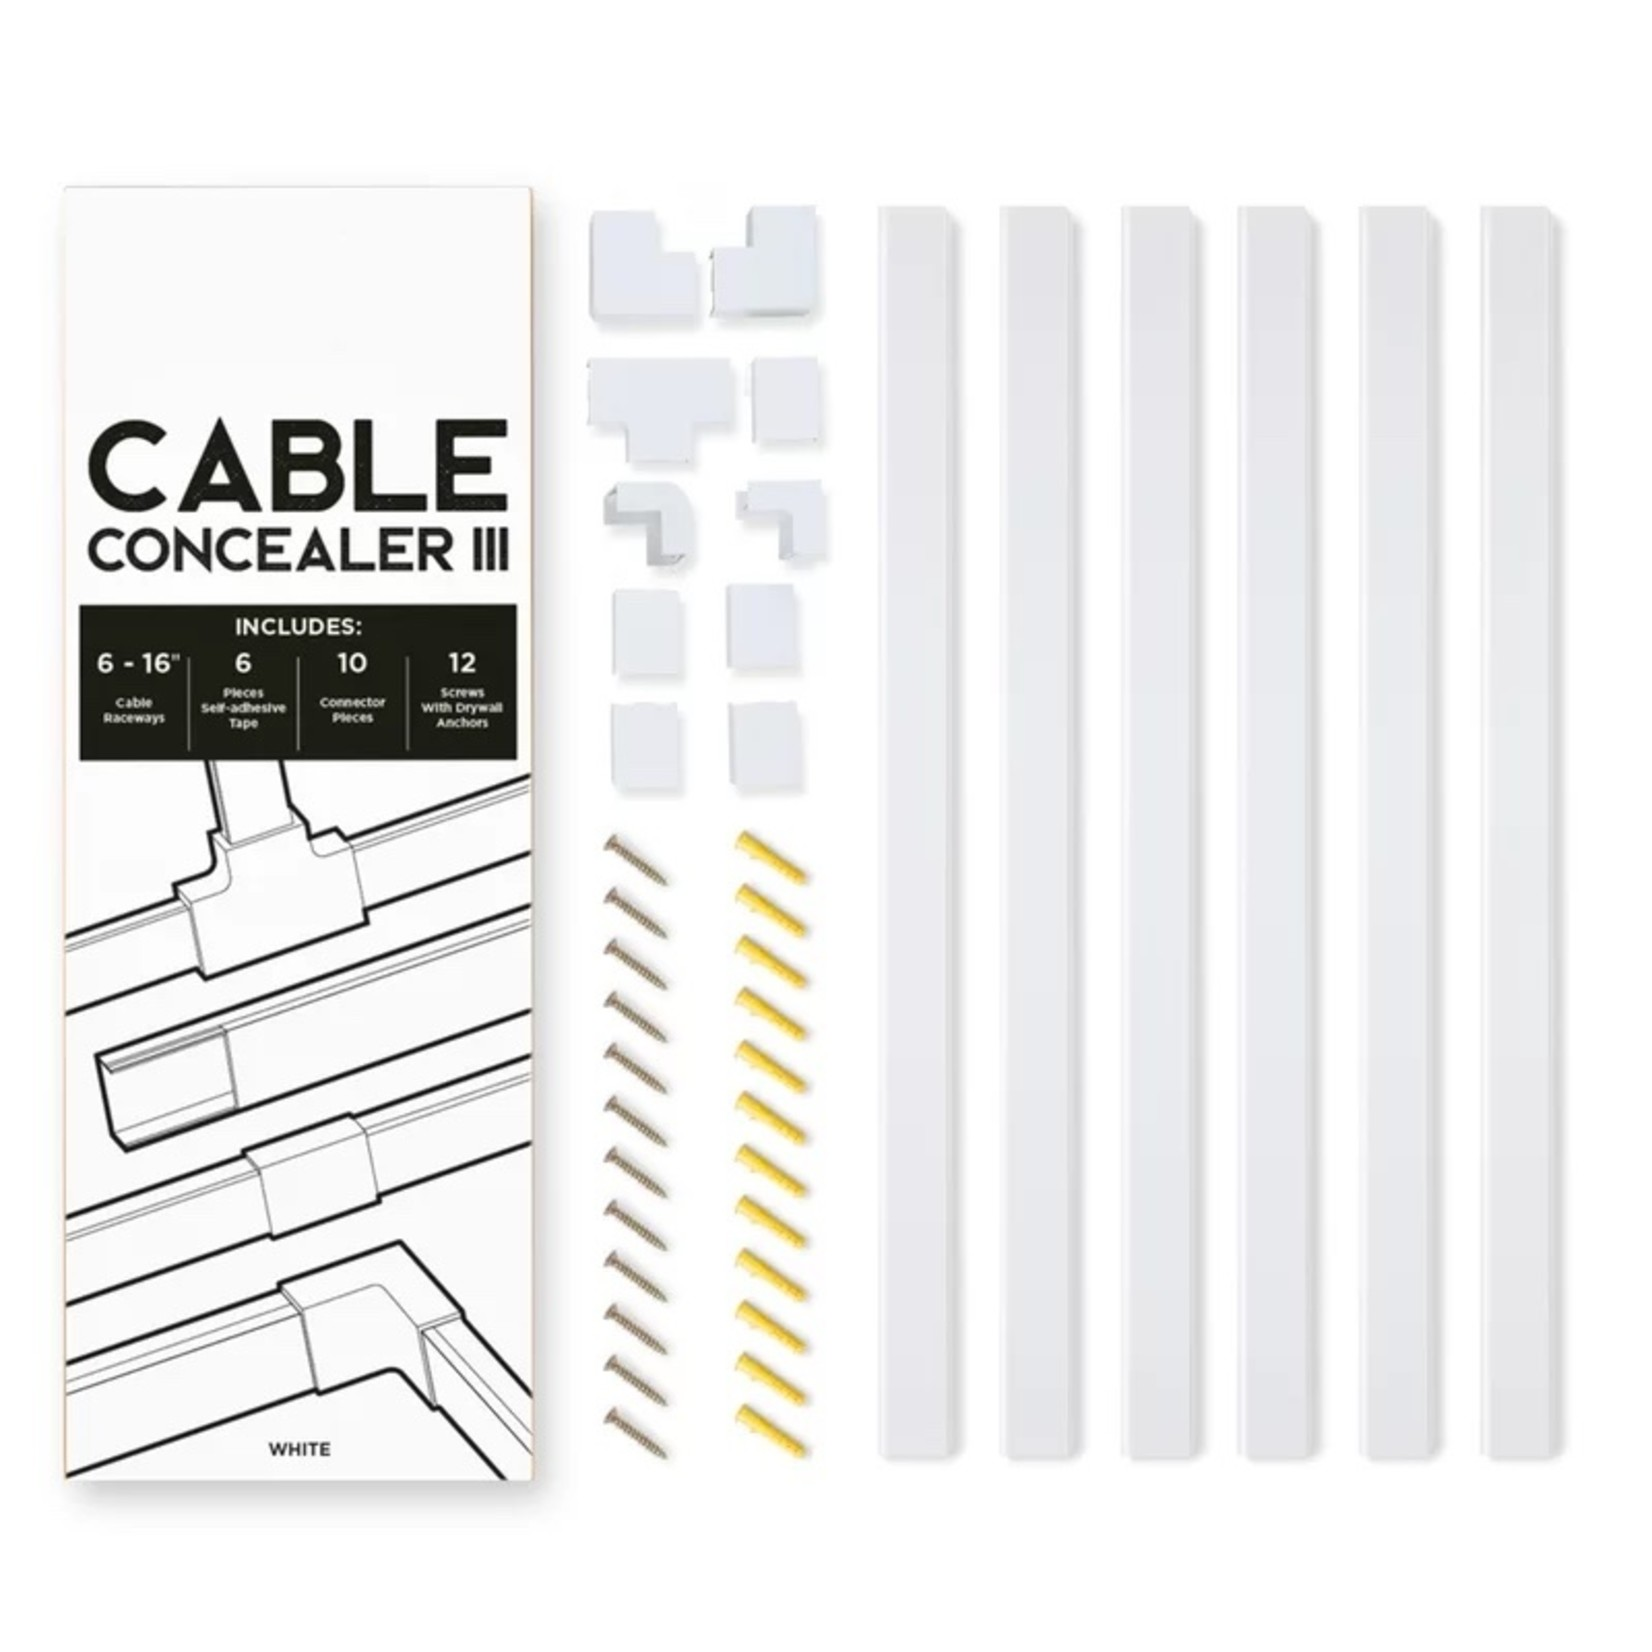 *Cable Concealer III On-Wall Cord Cover